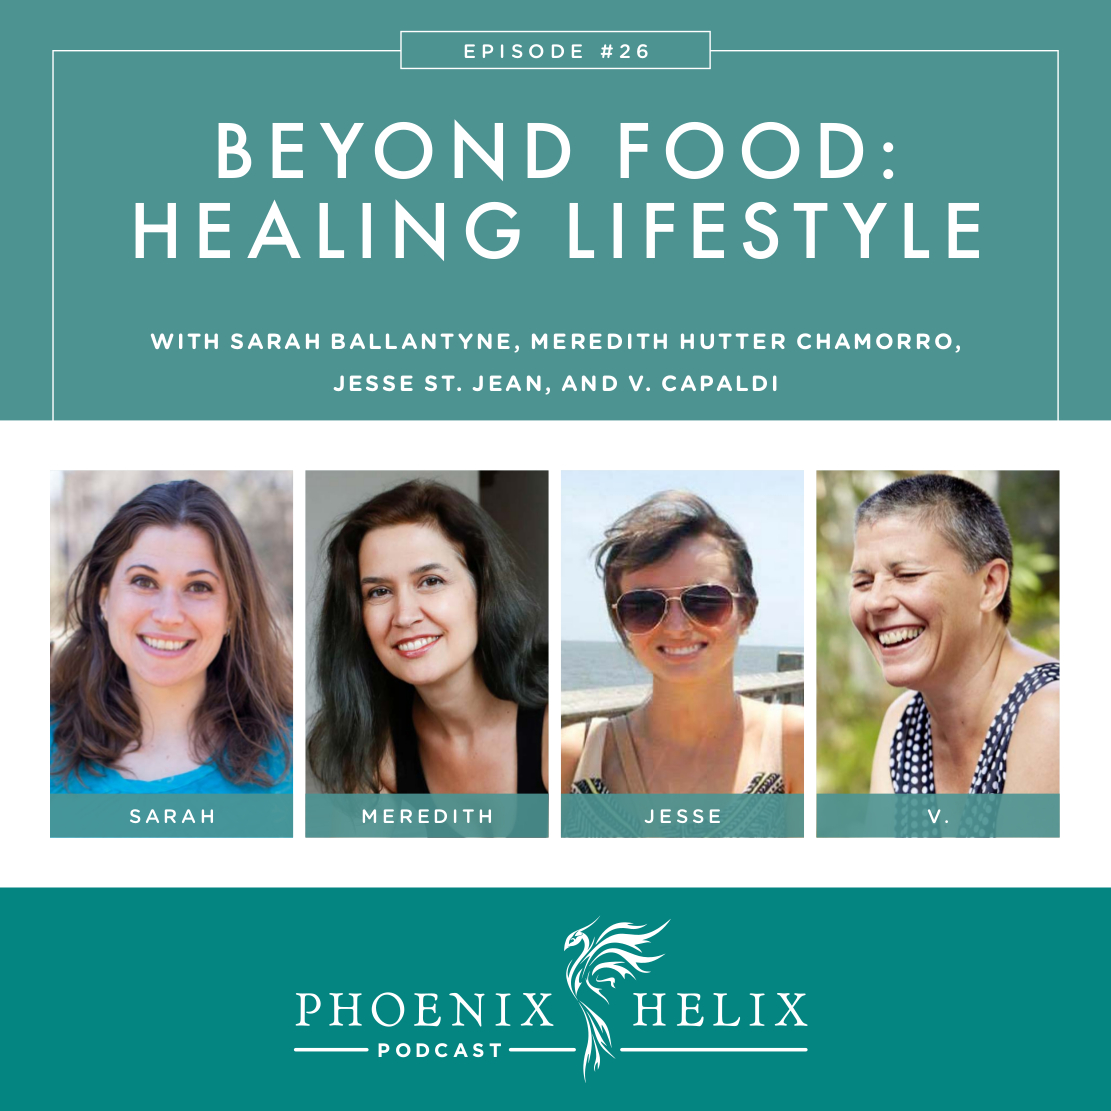 Best of the Phoenix Helix Podcast: Beyond Food - Healing Lifestyle